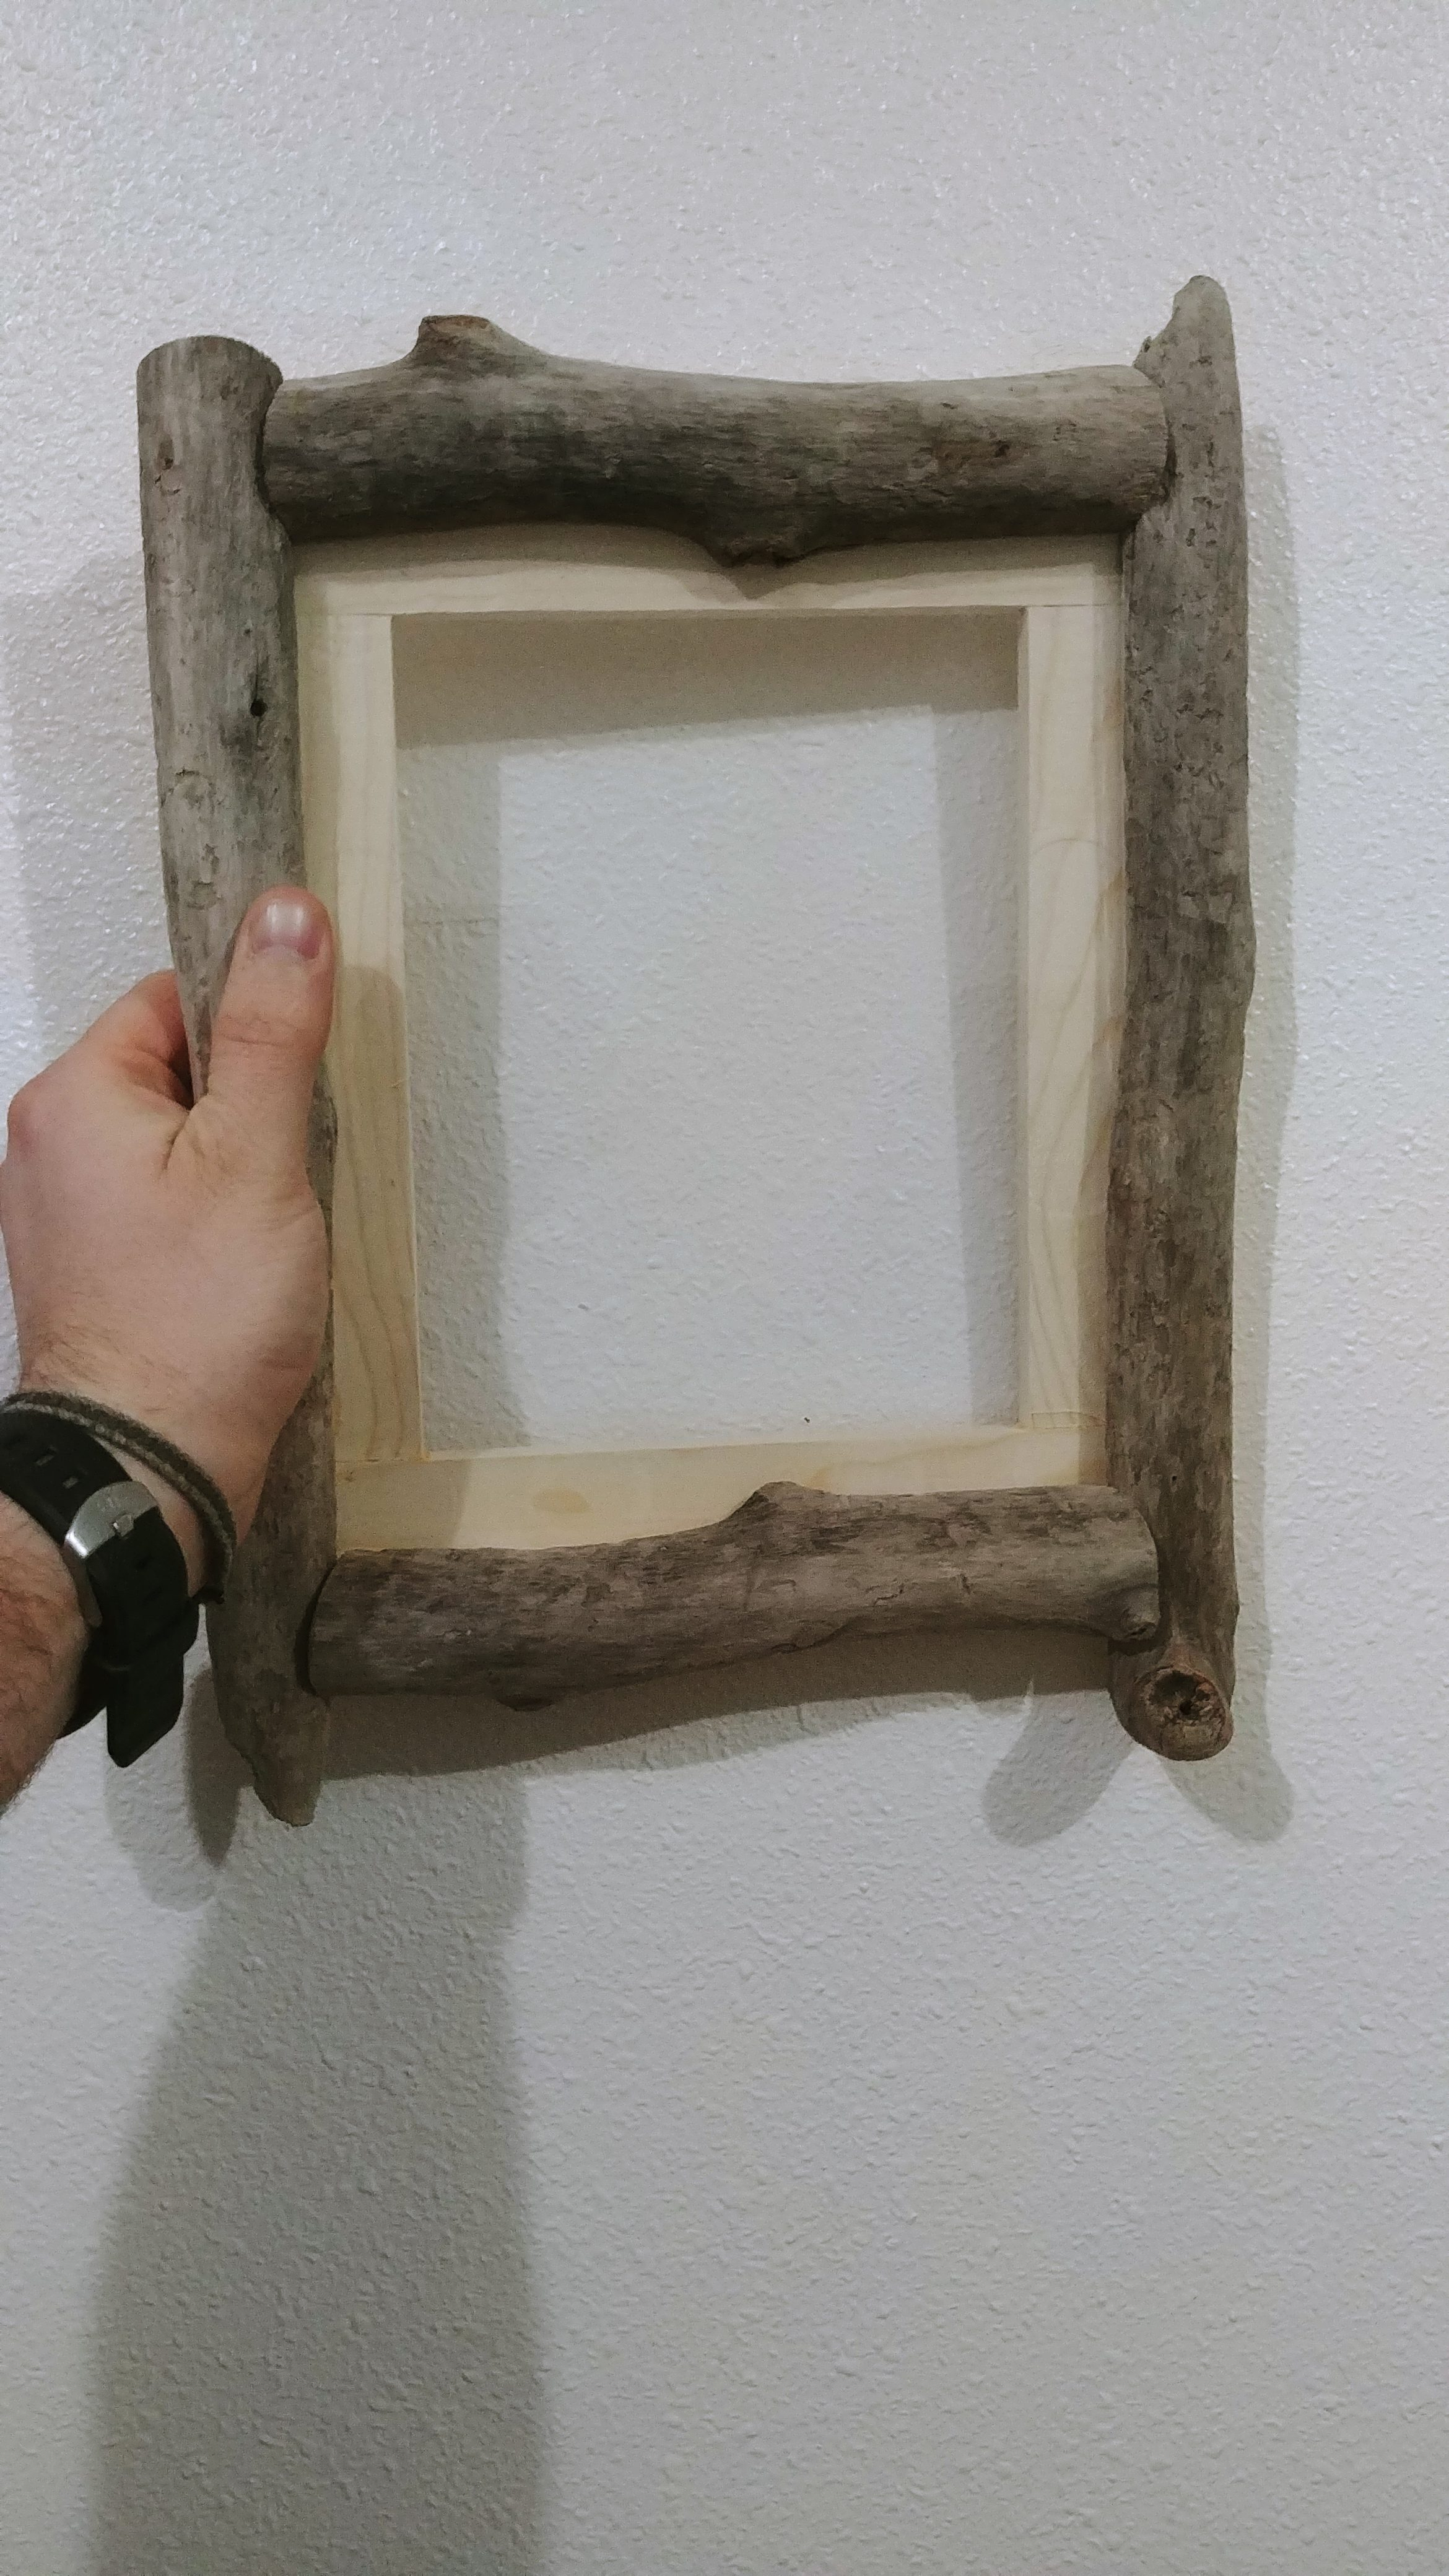 Design your own picture frame Etsy Design Your Own Driftwood Frame Ian Johnson Life Wildlife Wildlife Design Your Own Driftwood Frame Custom Wild Prints And Framing